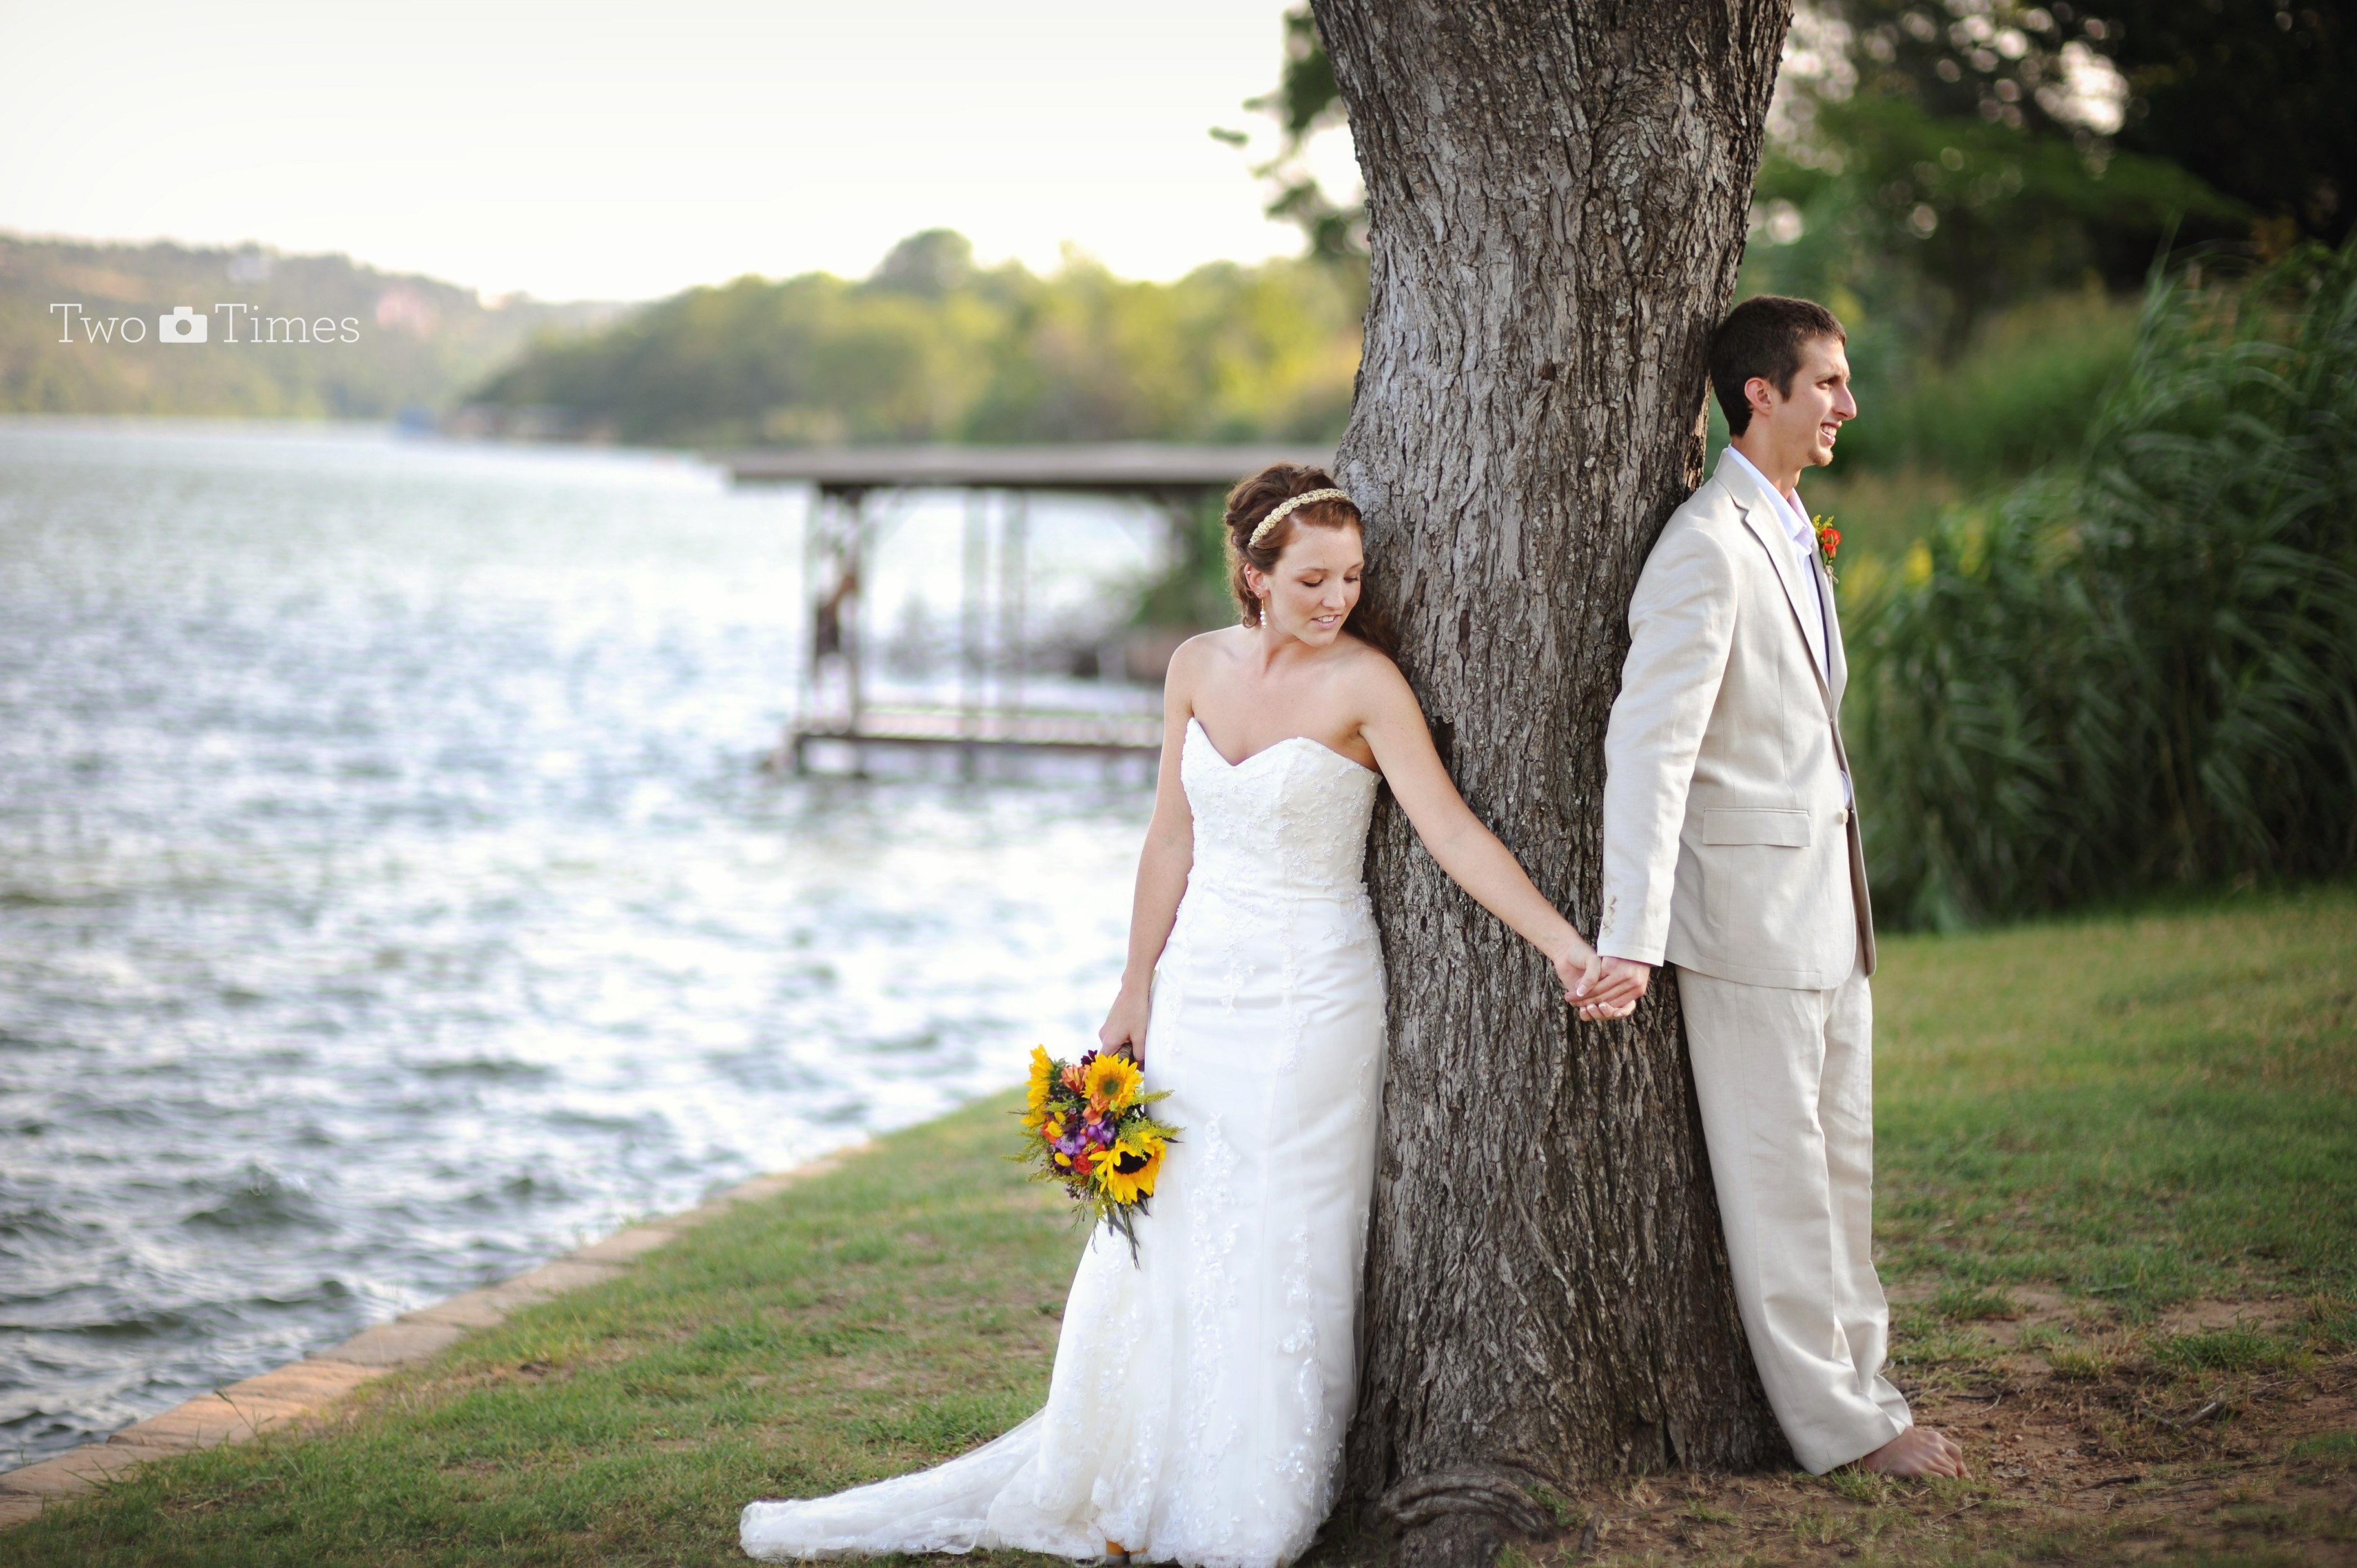 10 Attractive Bride And Groom Photo Ideas wedding photo ideas bride and groom bride and groom before the 2020